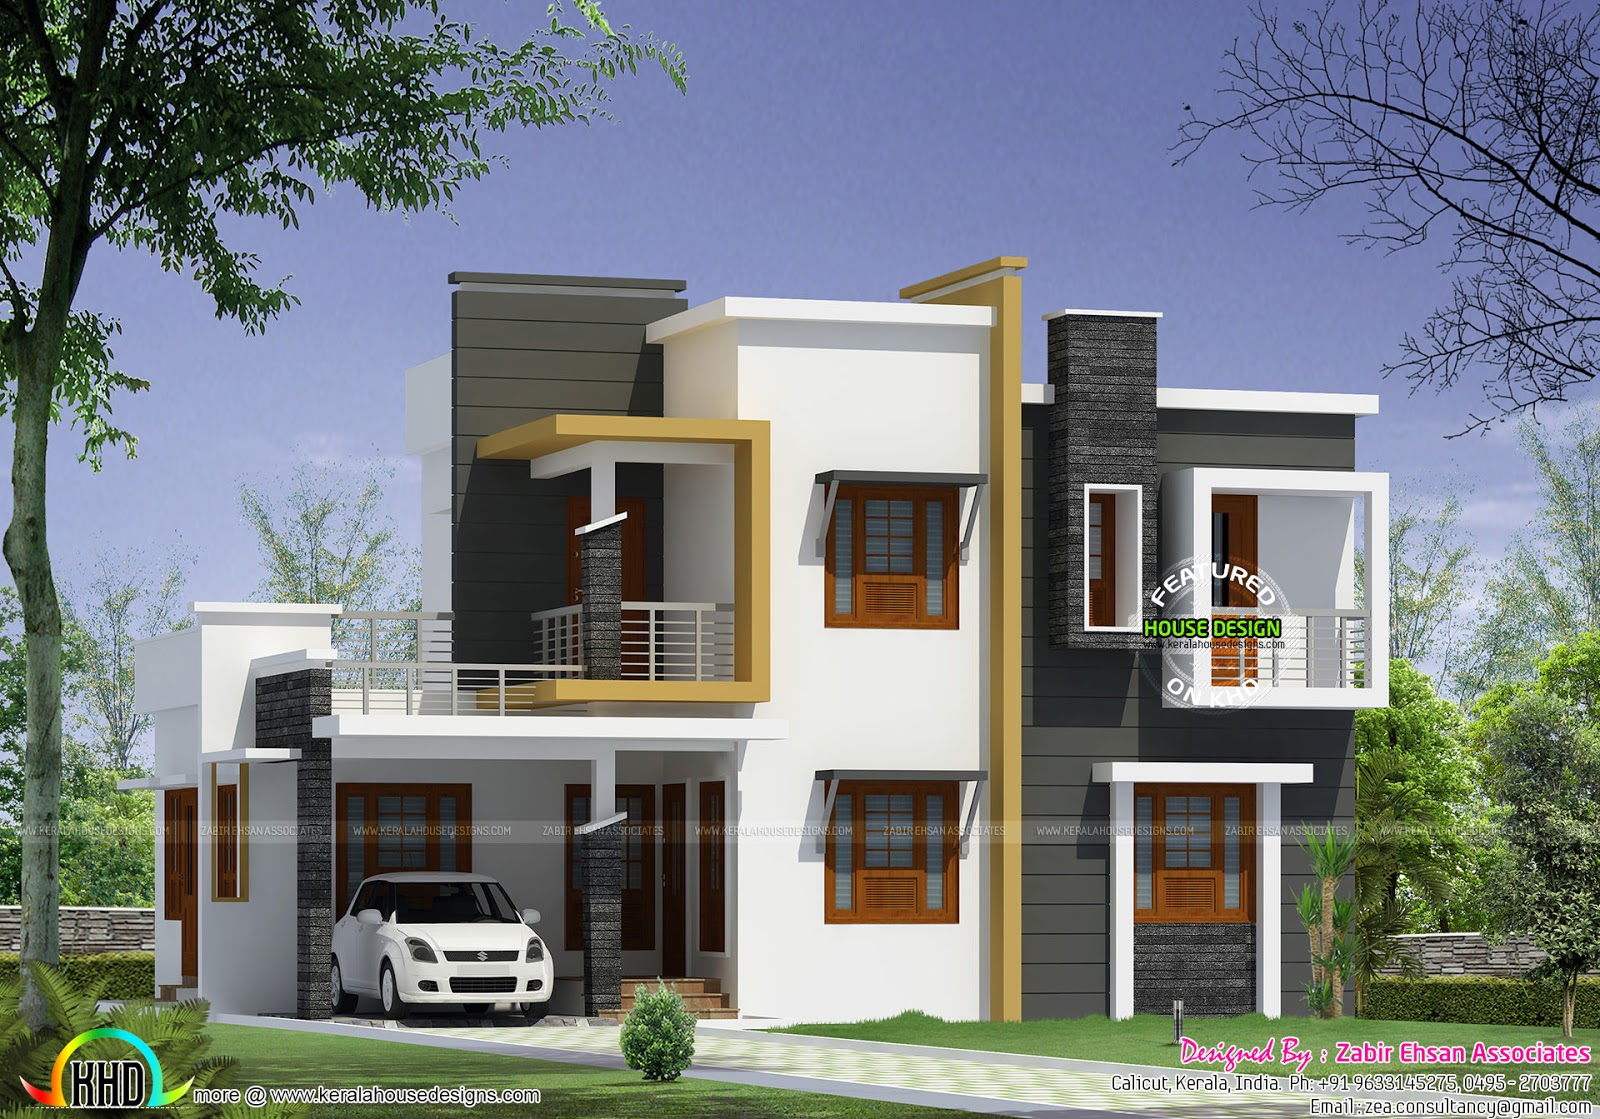 Box type modern house plan kerala home design and floor for Contemporary house designs